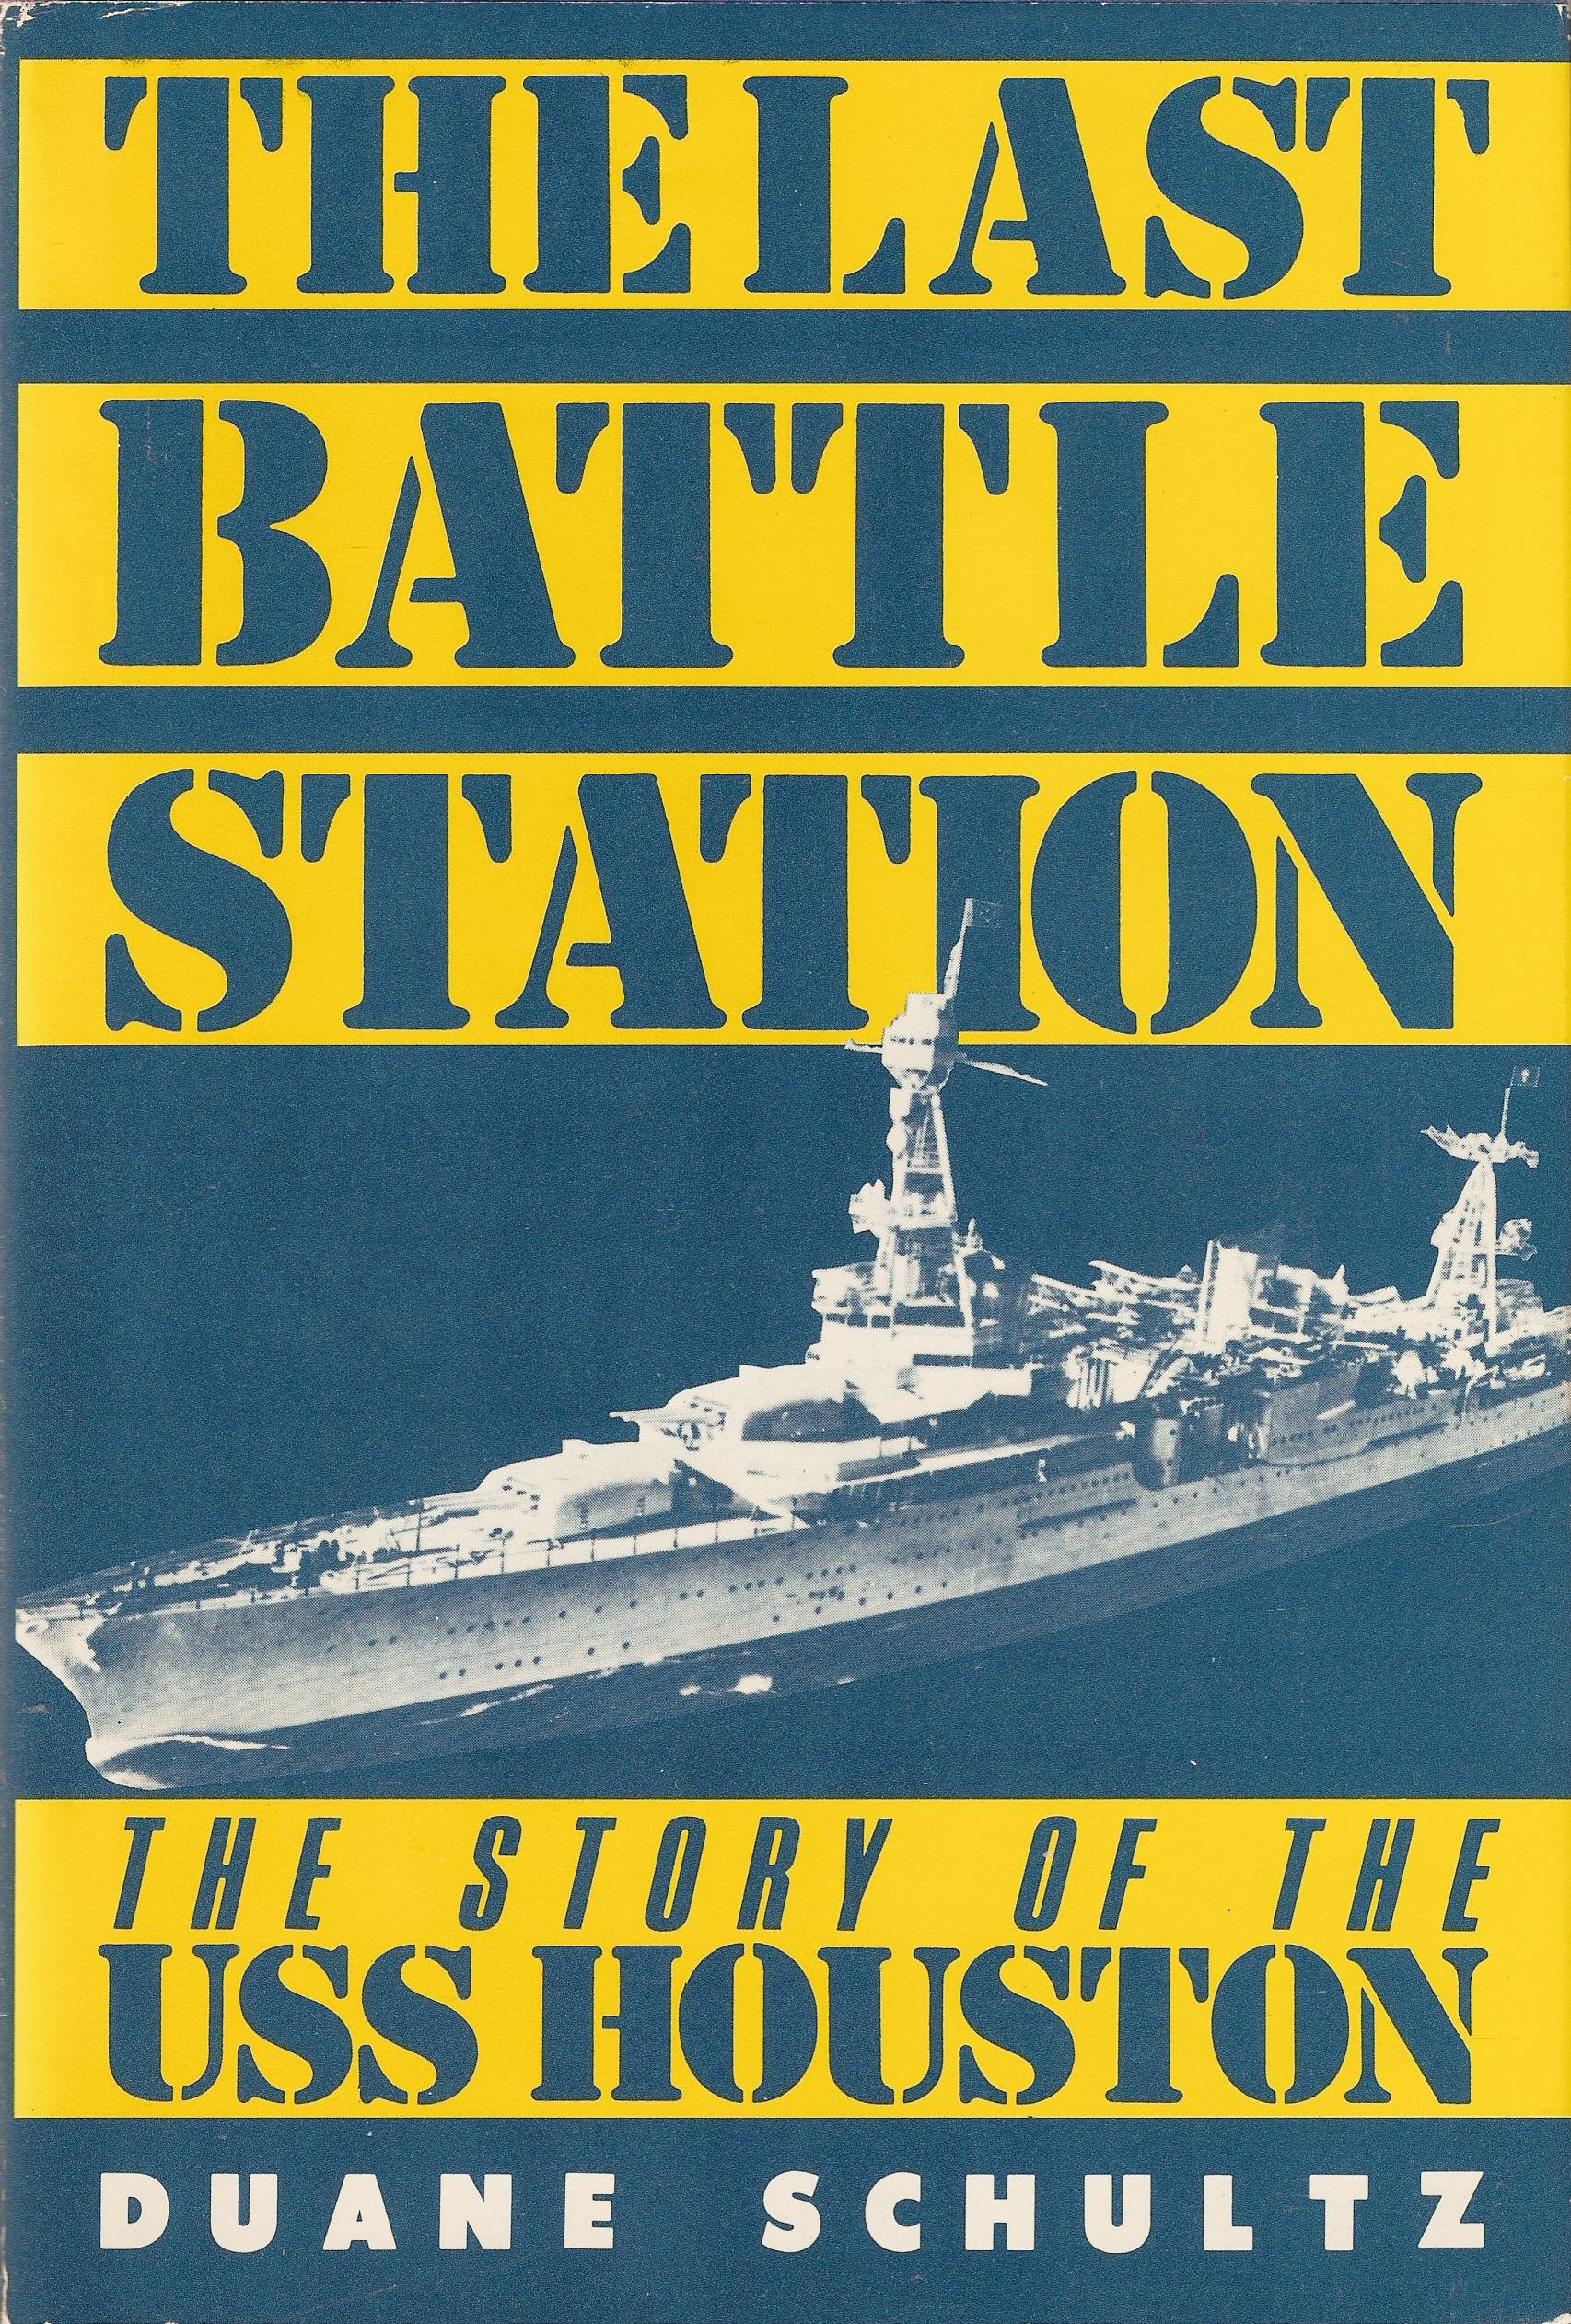 The Last Battle Station: The Story of the Uss Houston: Duane Schultz:  9780312469733: Amazon.com: Books